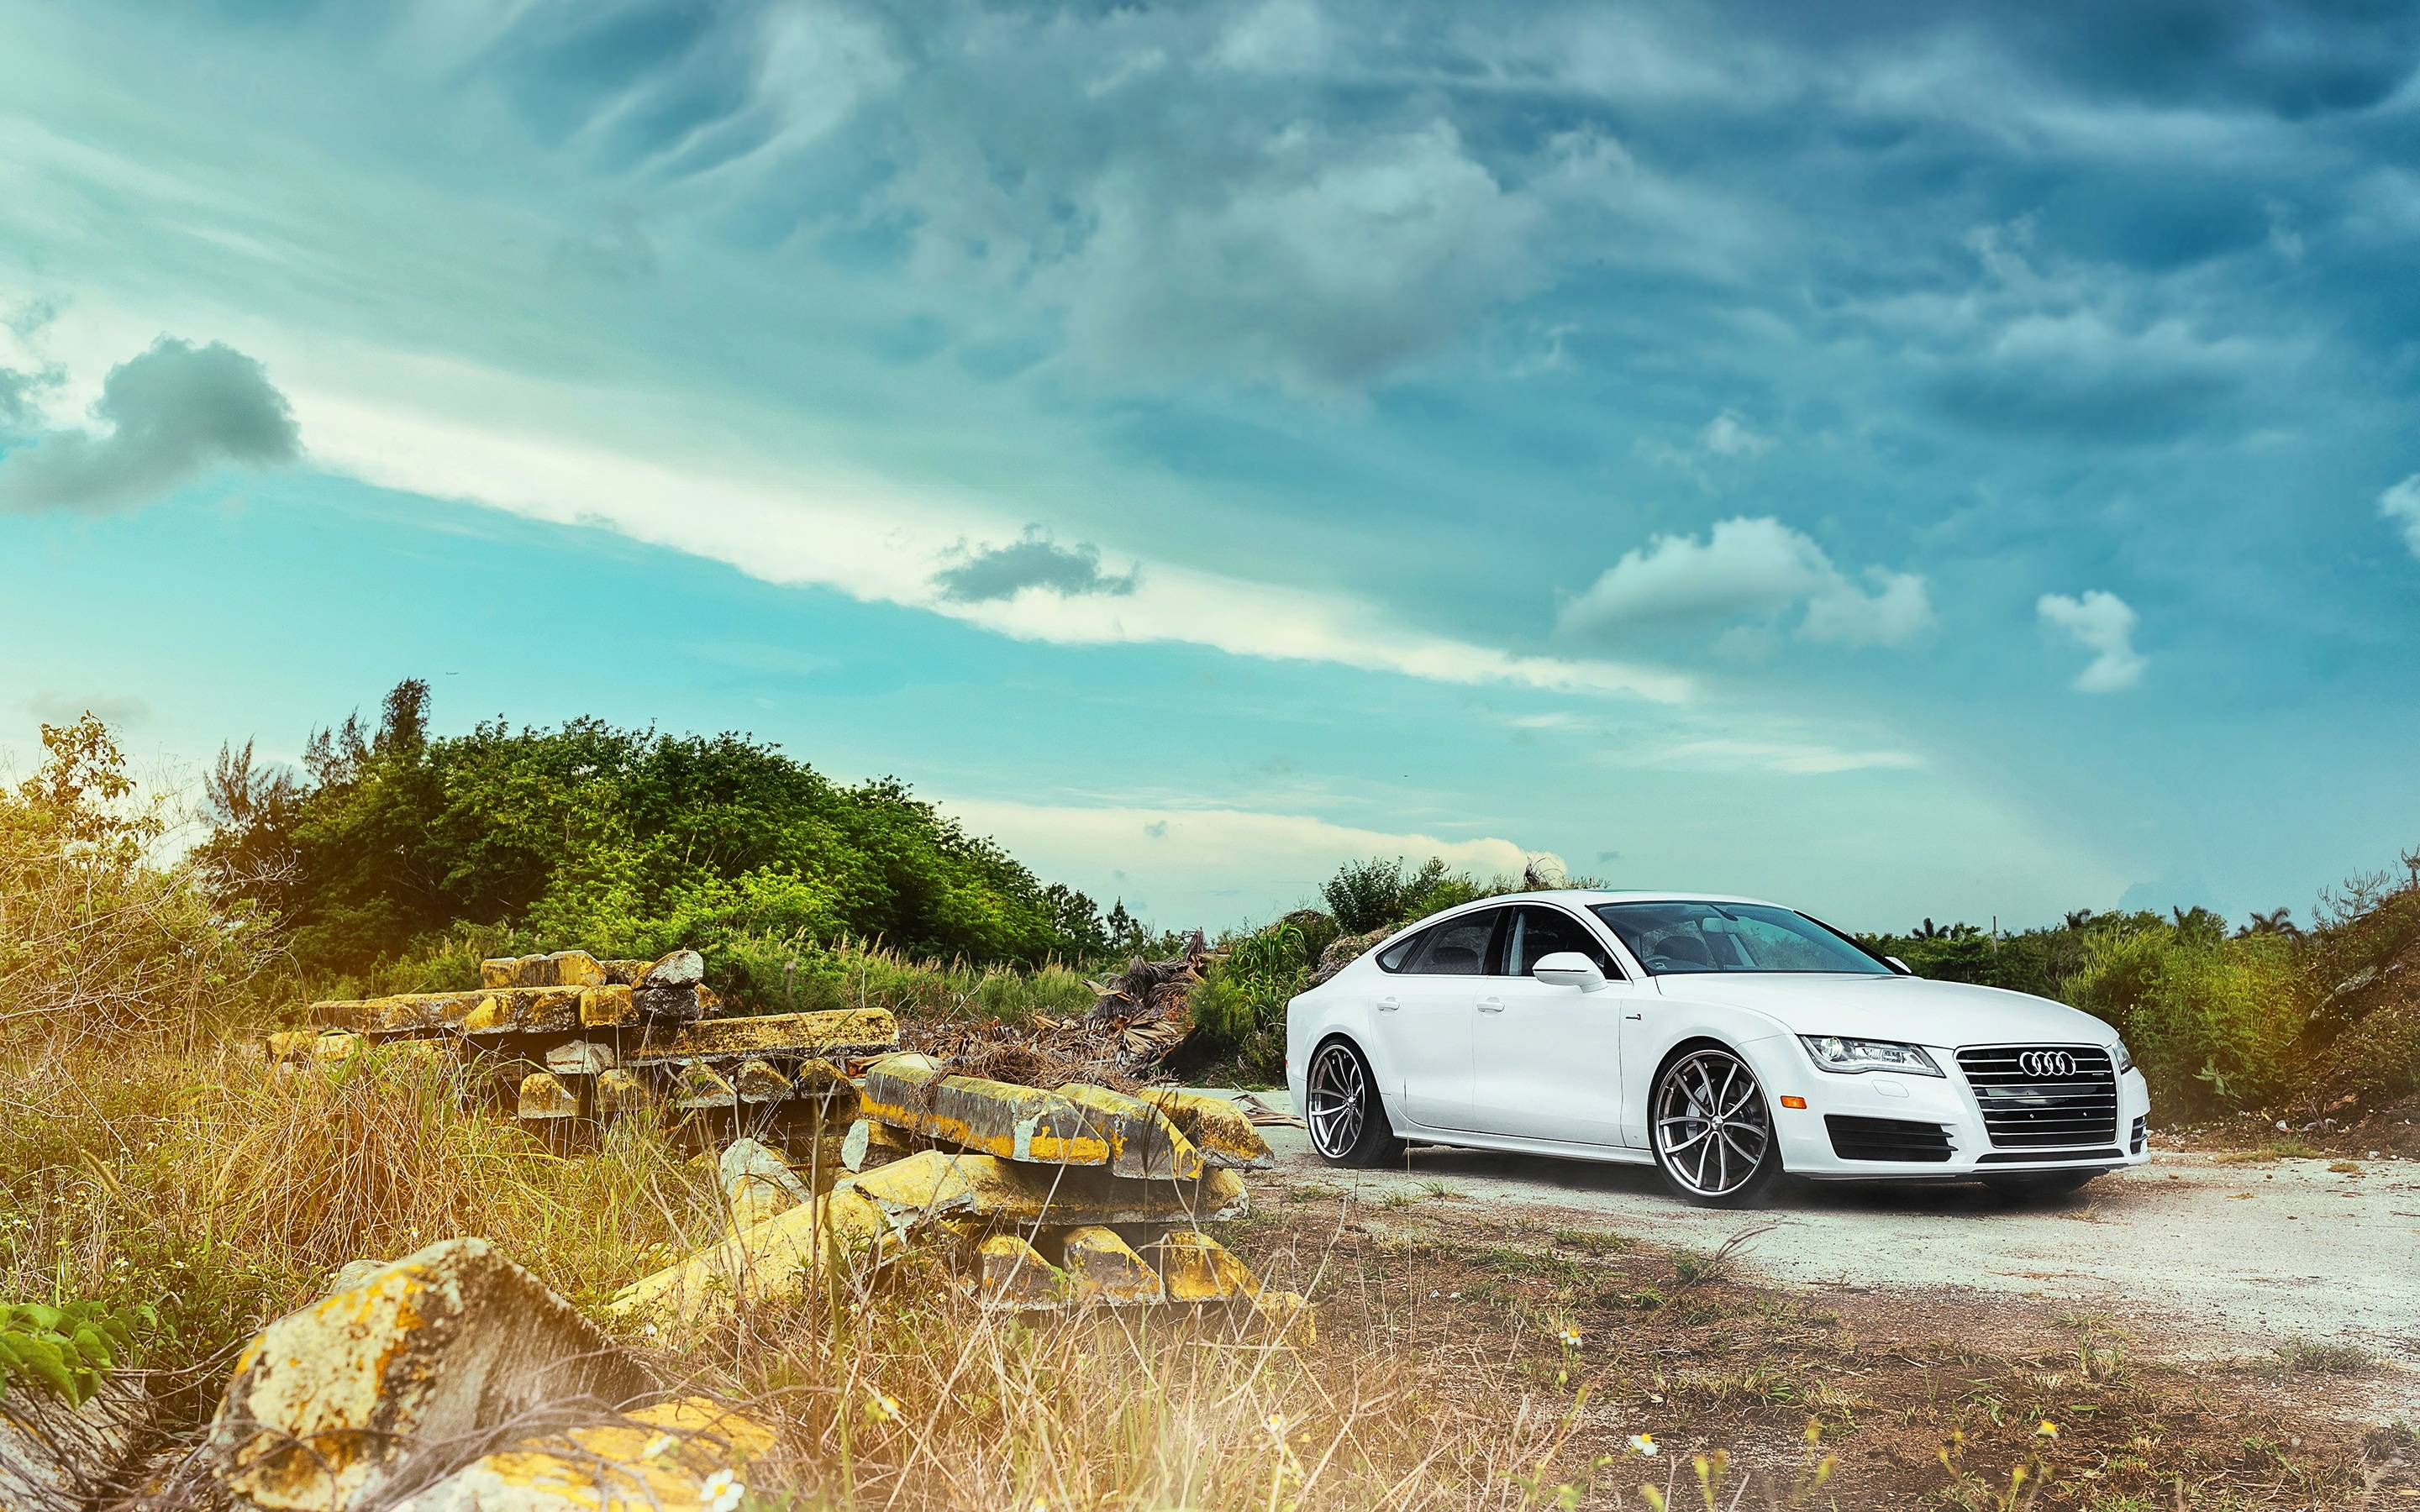 audi wallpaper - Tag | Download HD Wallpaperhd wallpapers ›› Page ...